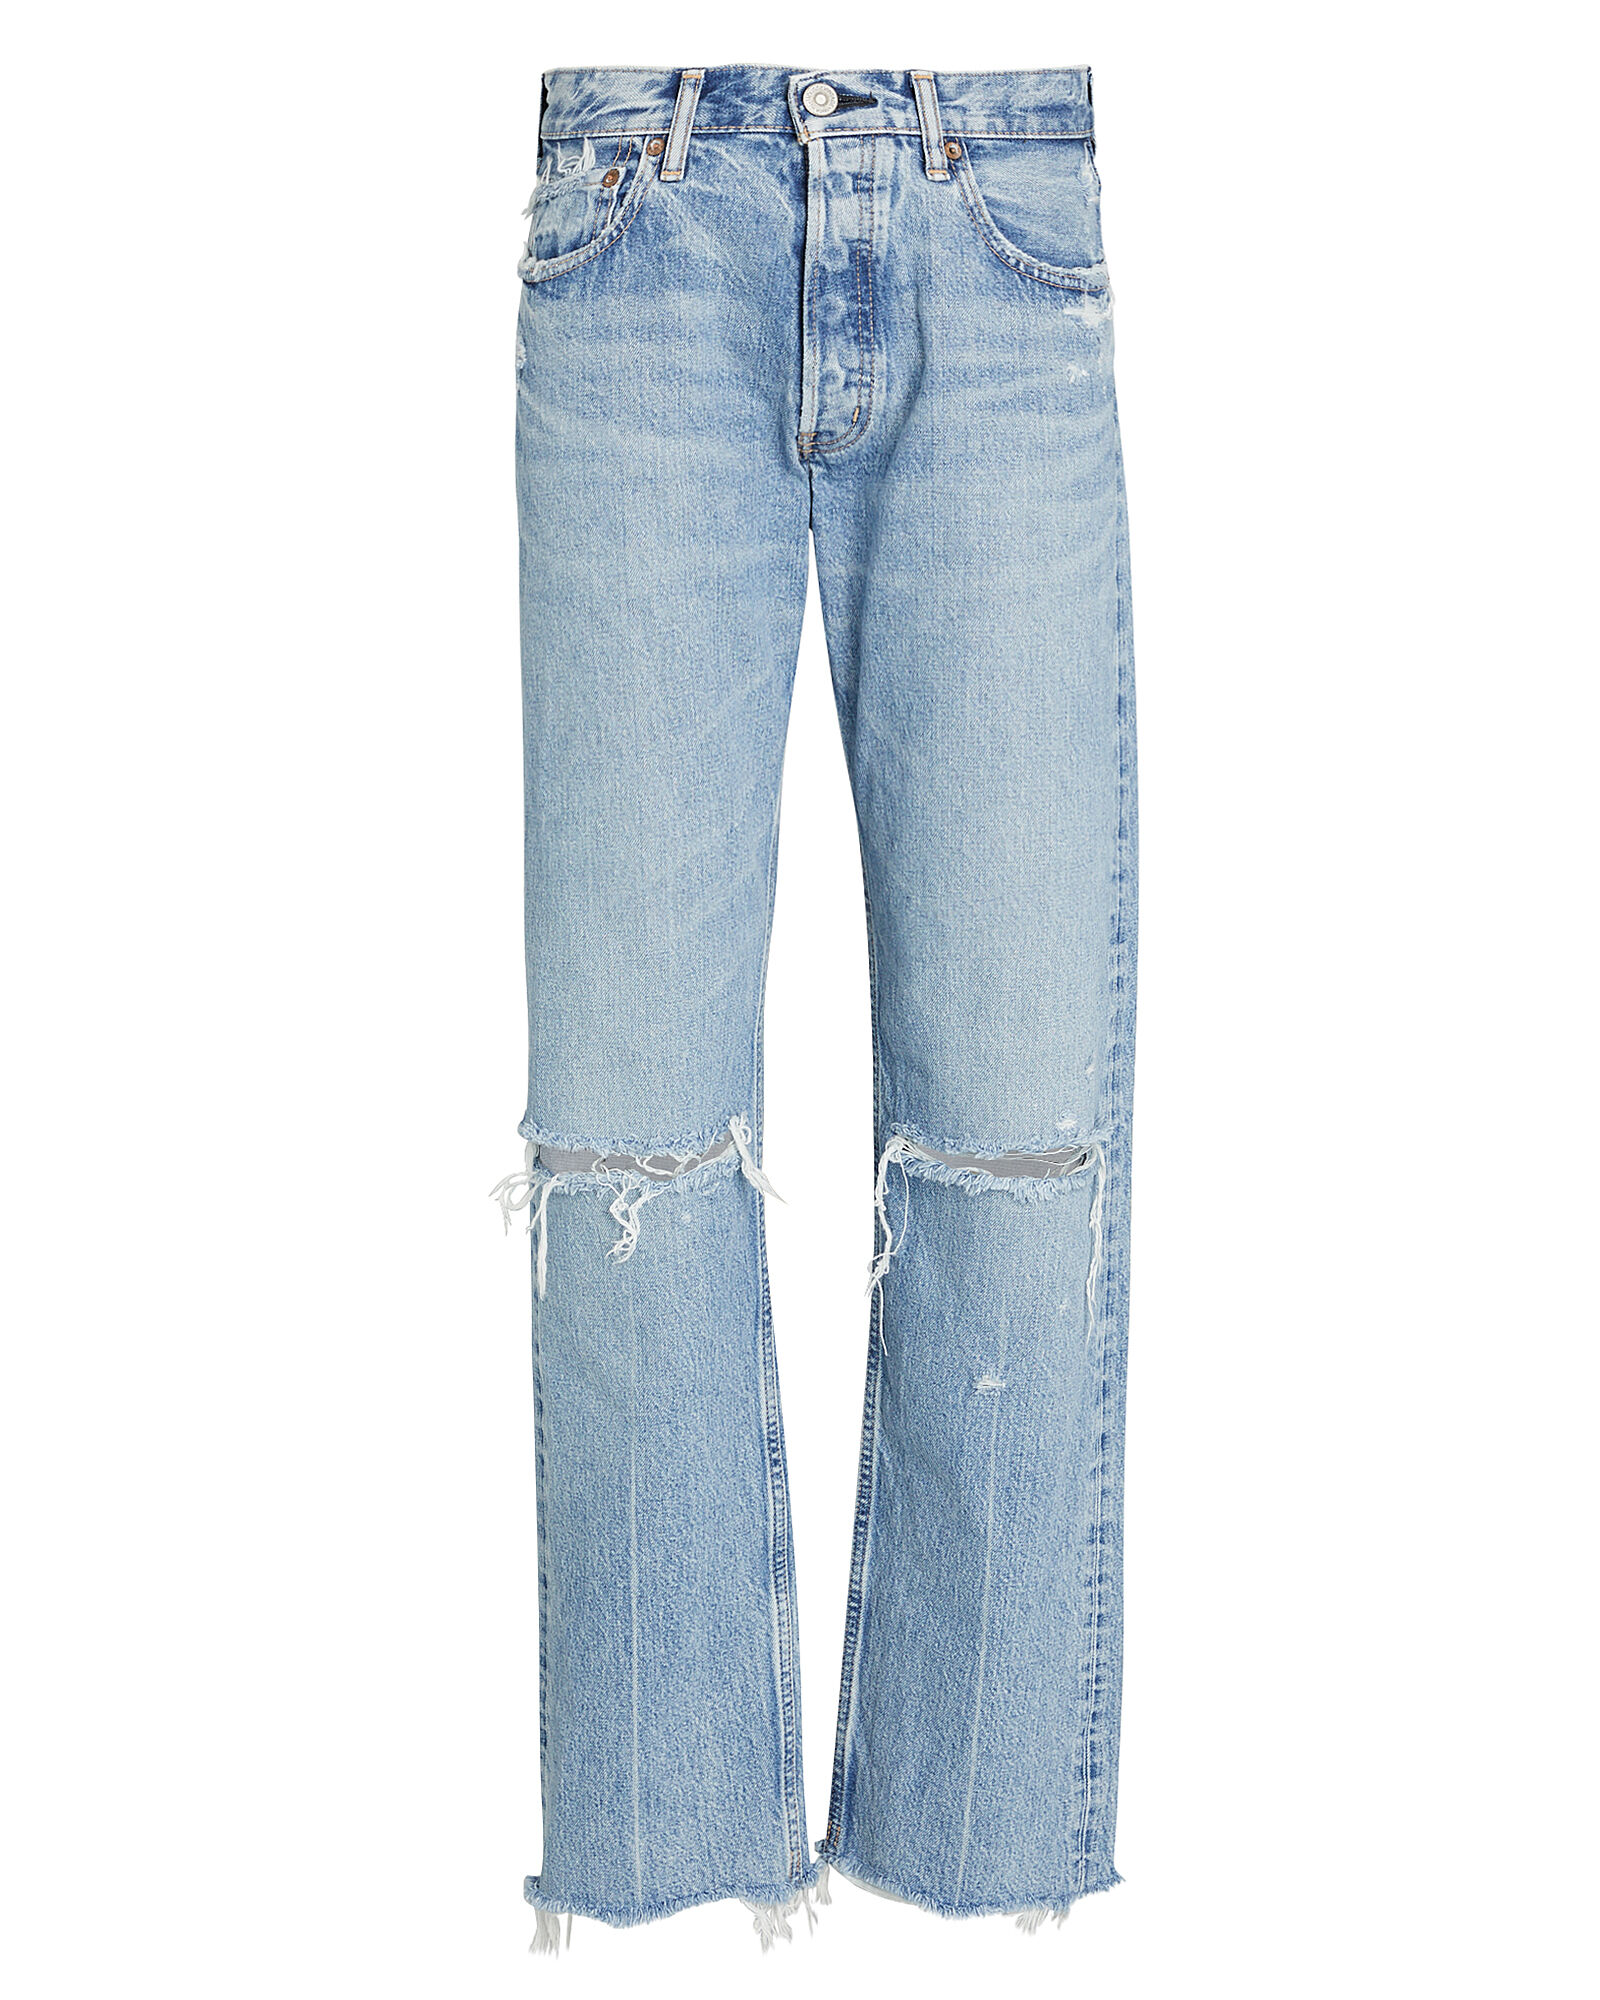 Viola Wide Straight-Leg Jeans, LIGHT WASH DENIM, hi-res